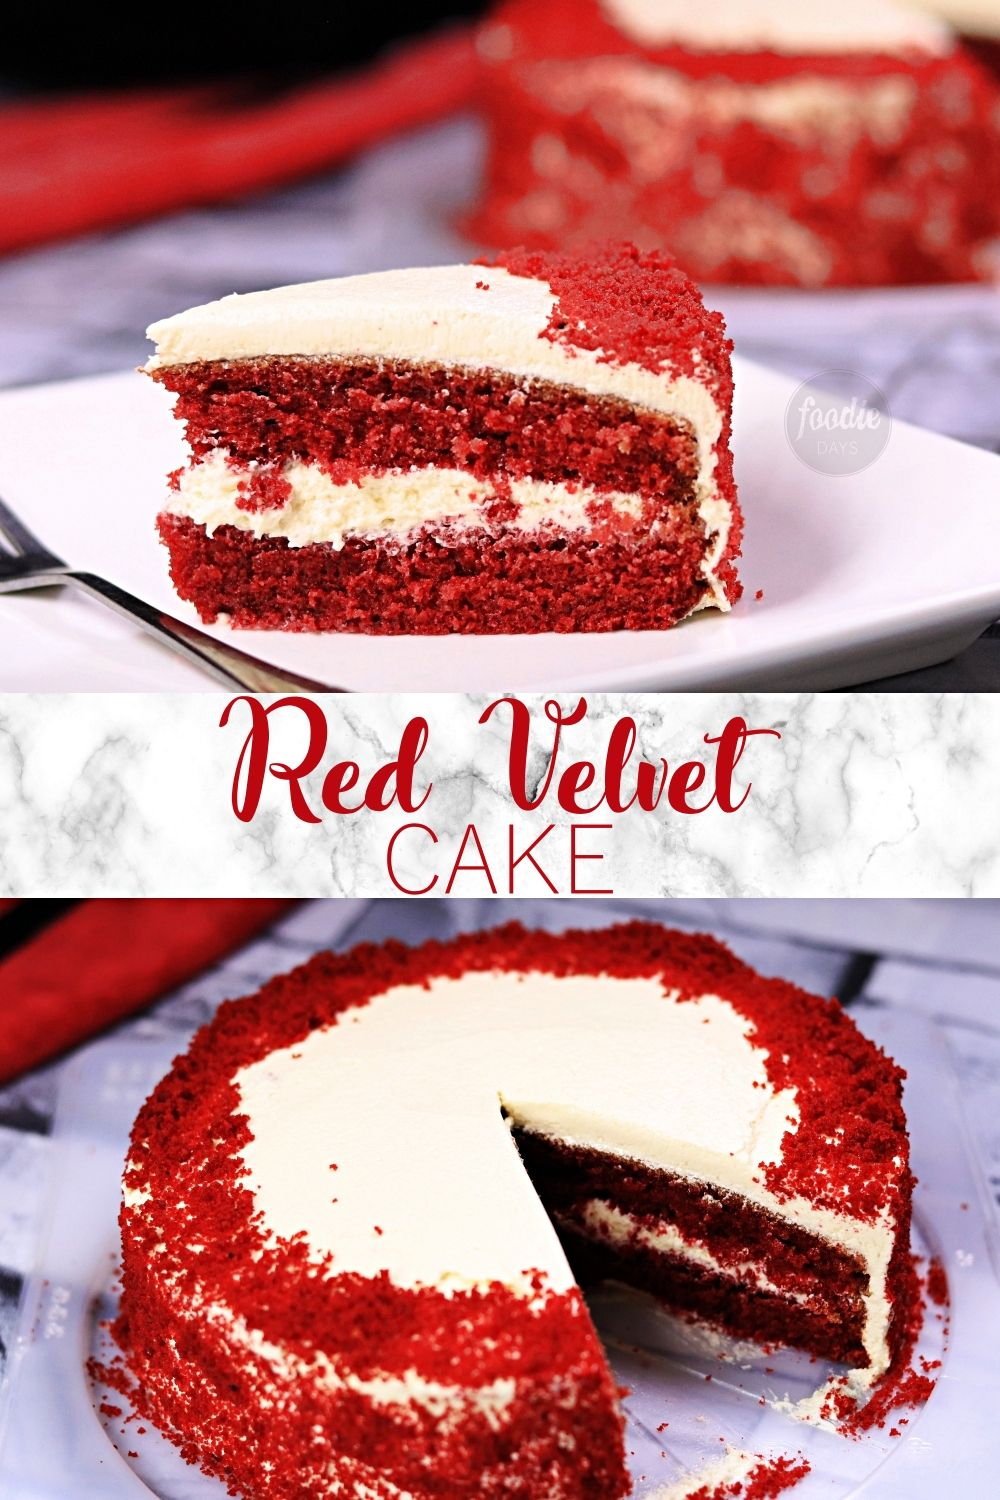 Red Velvet Cake With Cream Cheese Frosting In 2020 Red Velvet Cake Velvet Cake Light Chocolate Cake